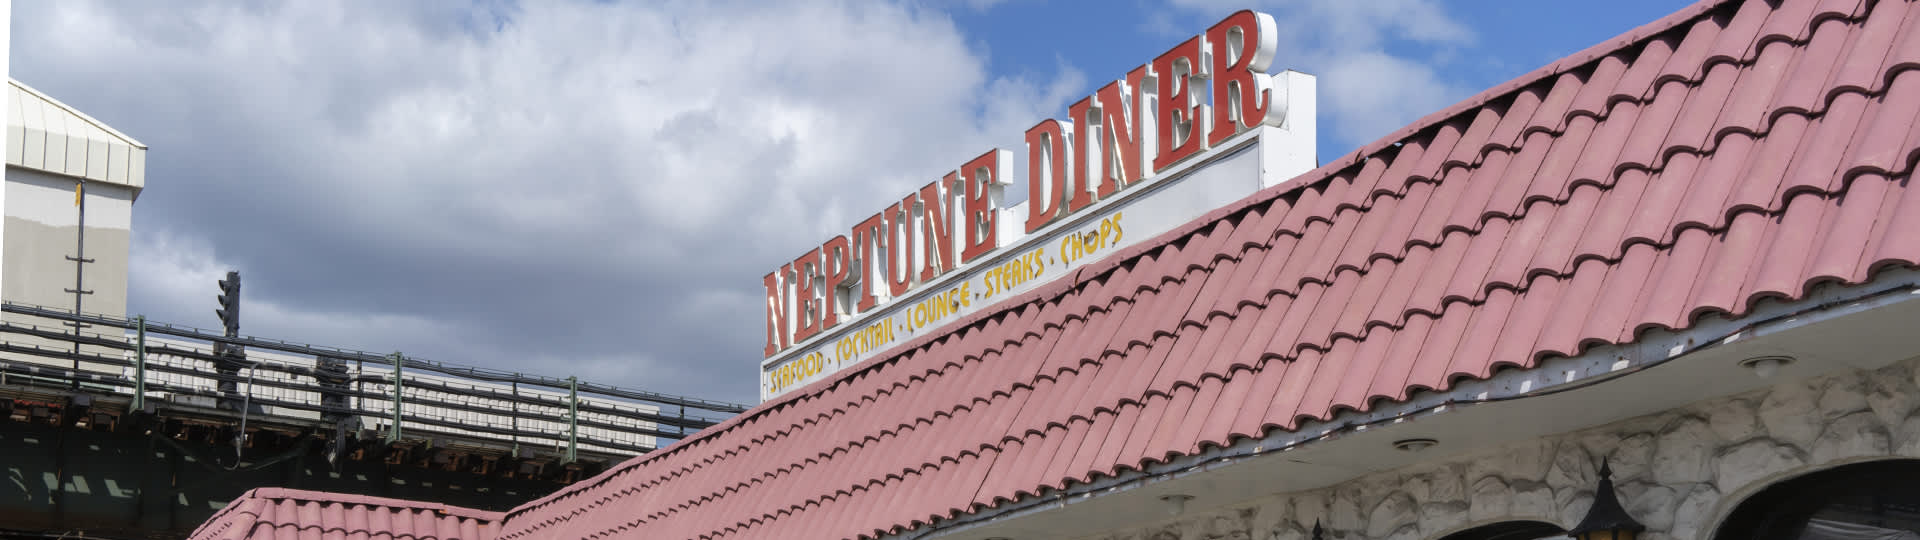 Neptunes Diner, Astoria, Queens